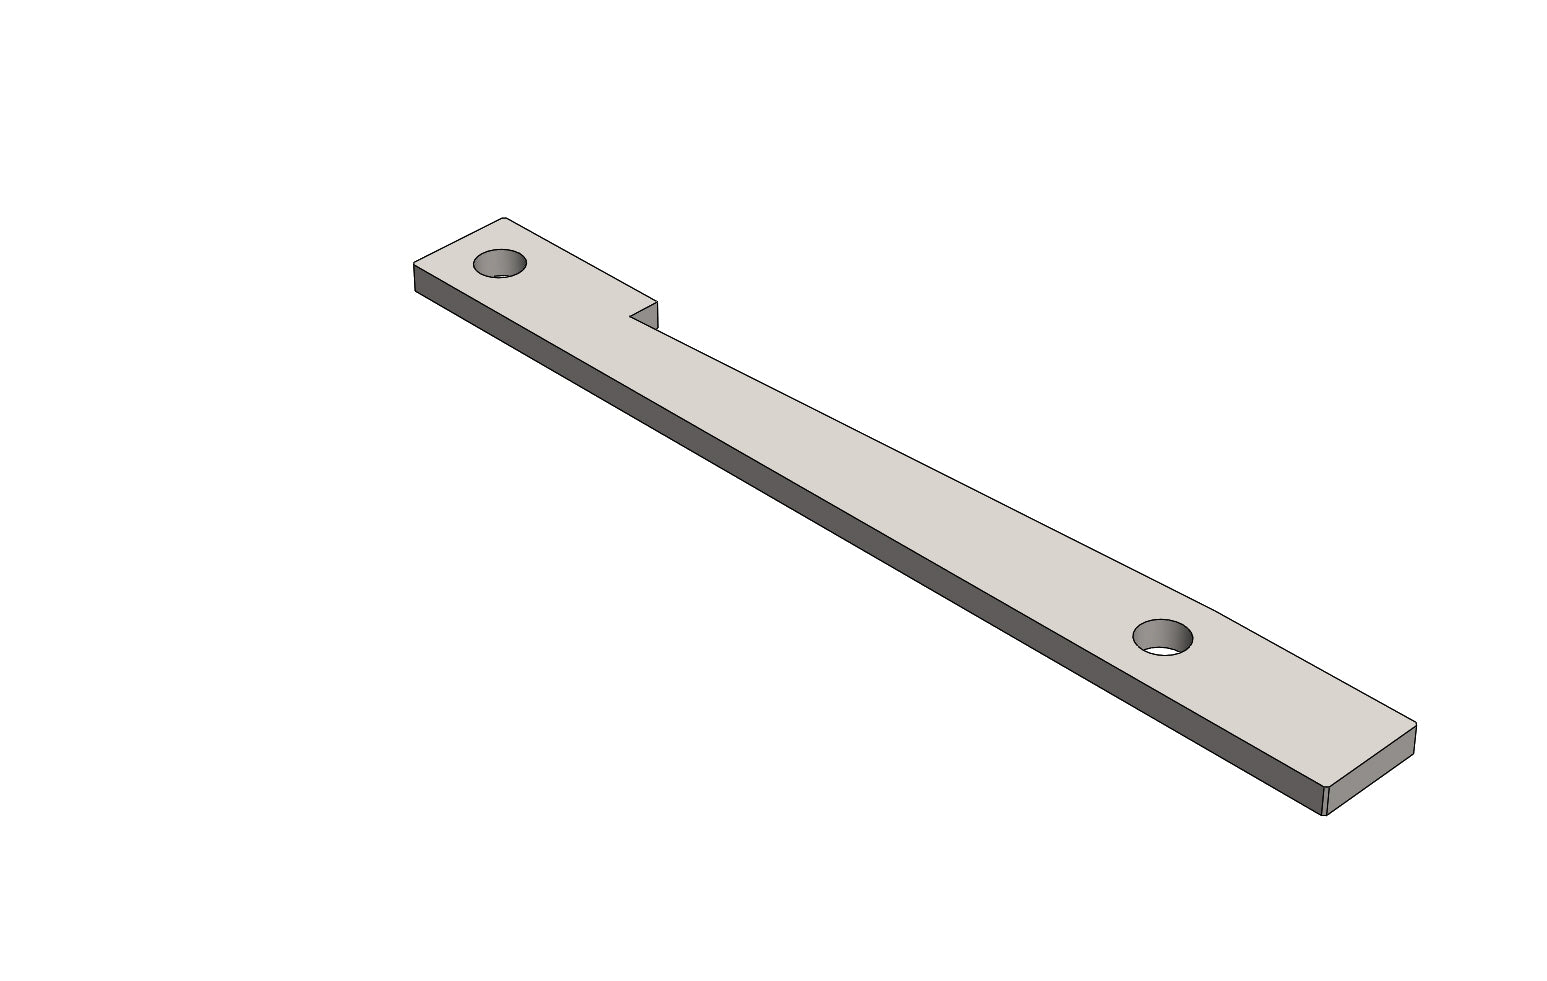 TC6272003A UPPER SUPPORT RAIL - King TC8 Spare Part